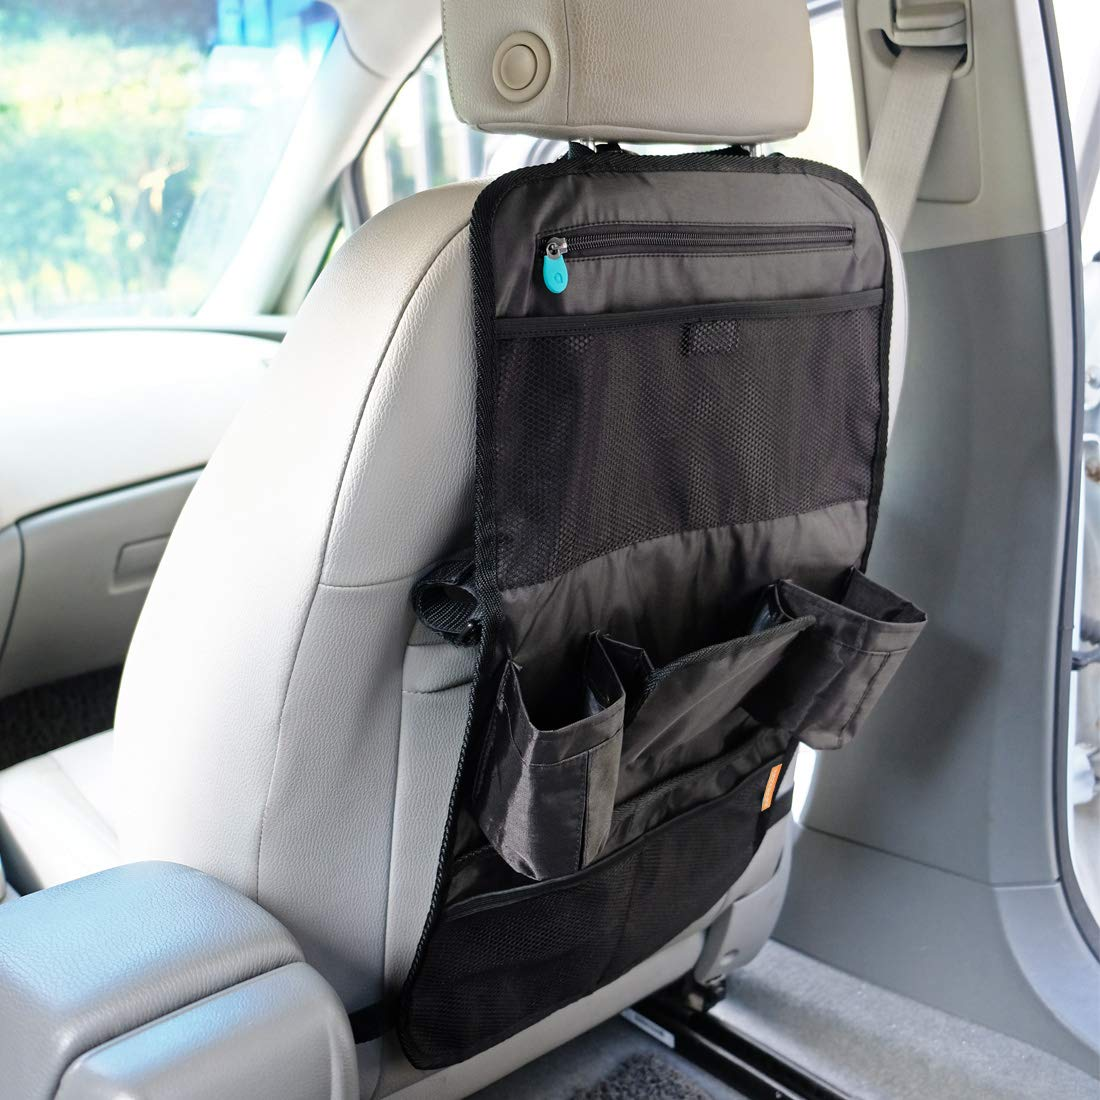 2pc INFANZIA Car Seat Back Organizer for Kids Travel Accessories Back Seat Protector with Multi Pocket Storage